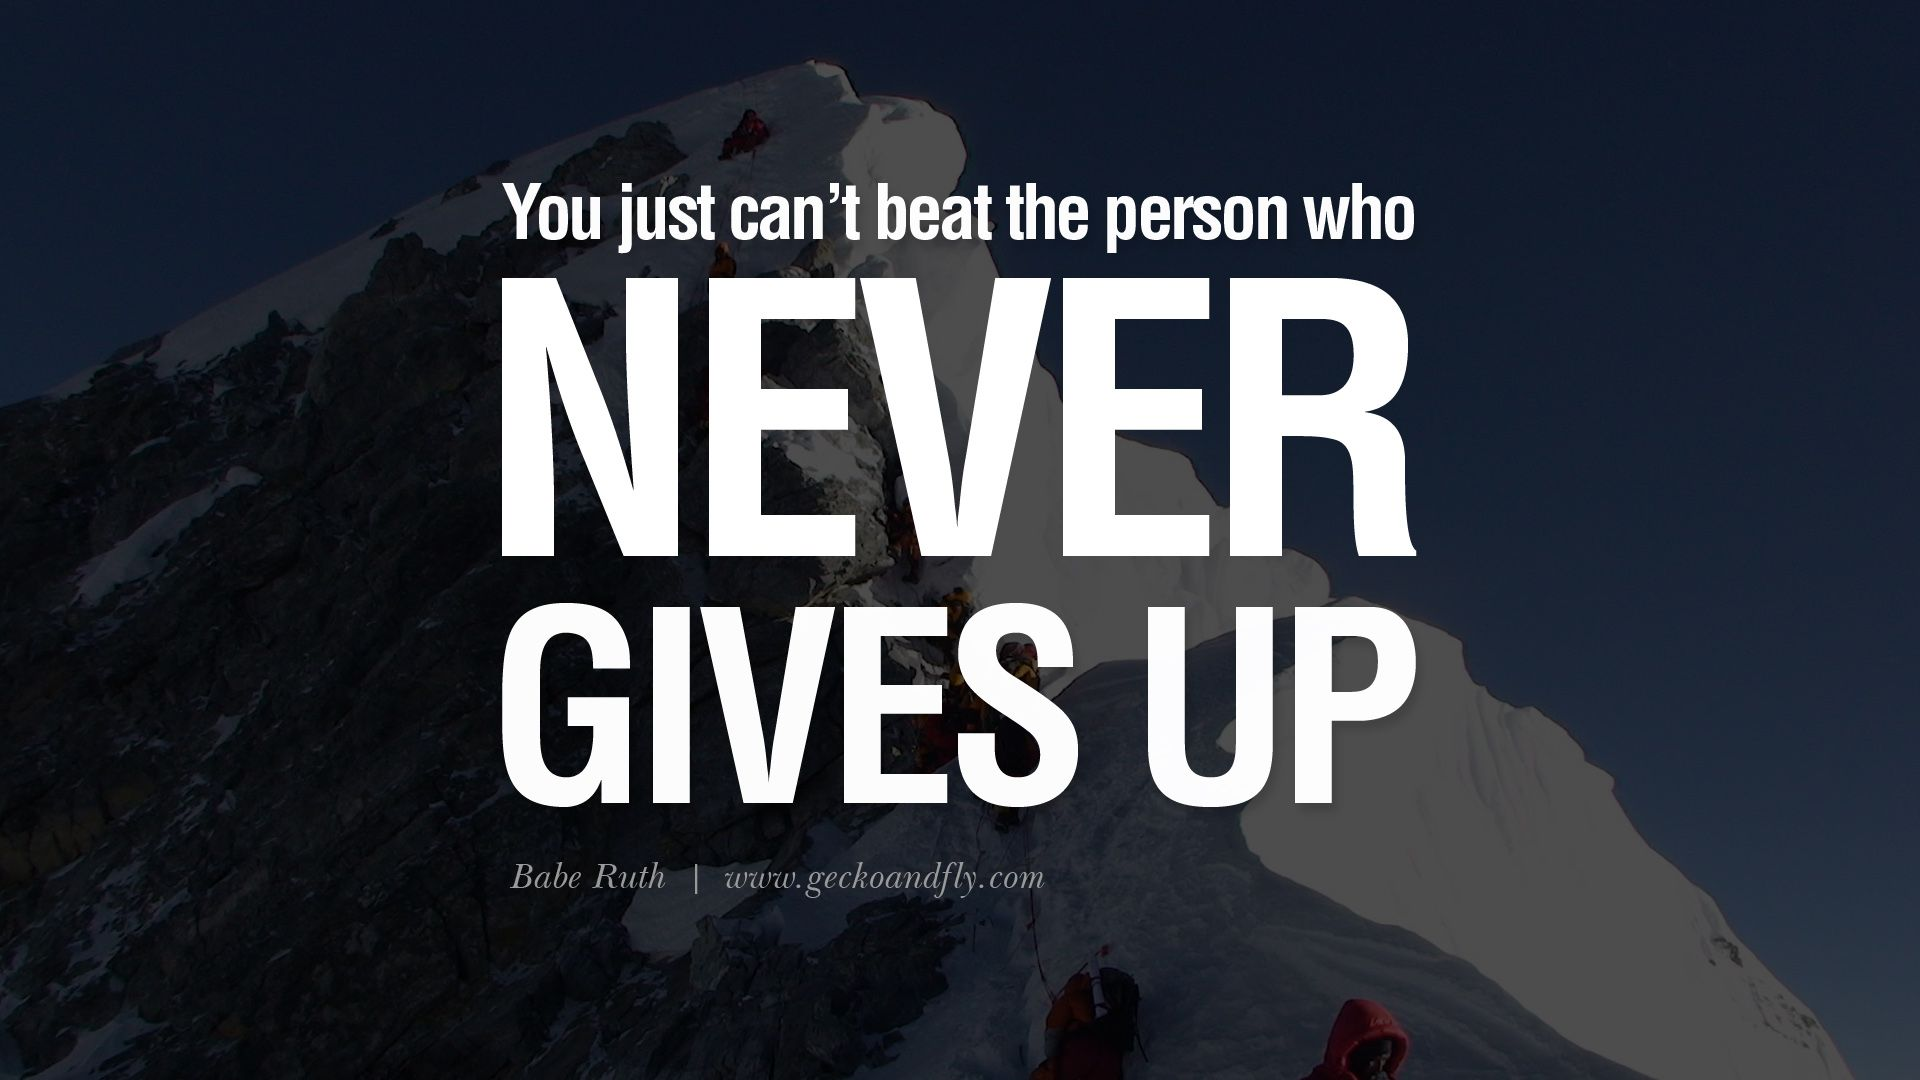 20 Encouraging And Motivational Poster Quotes On Sports